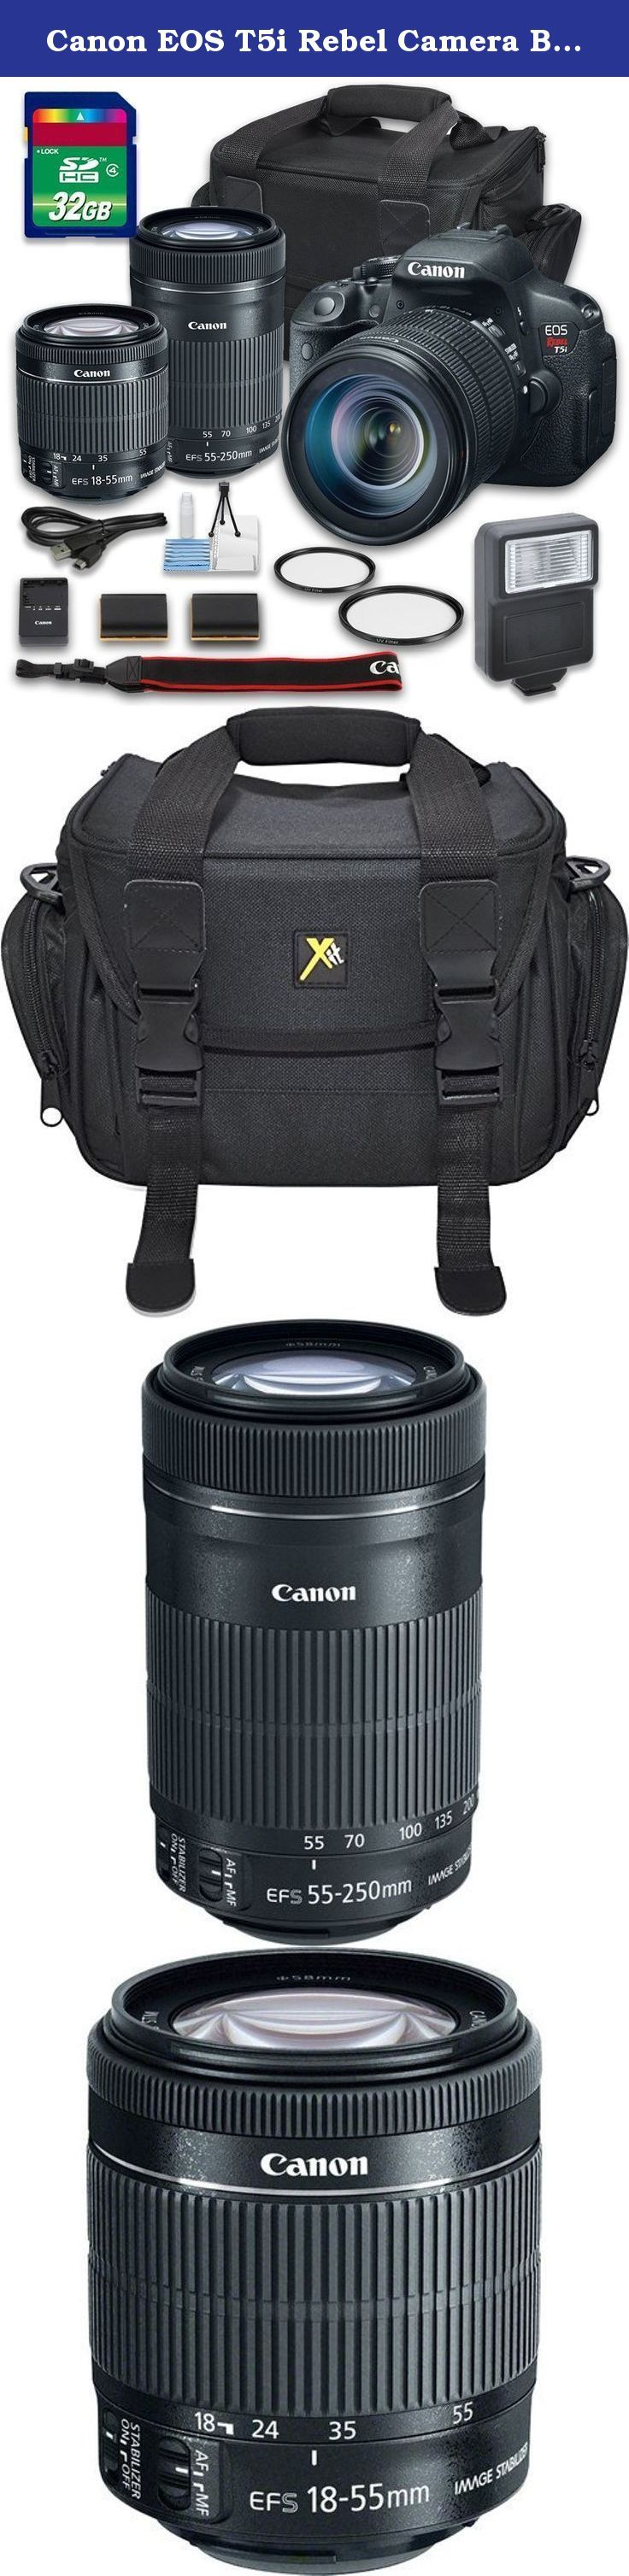 Canon EOS T5i Rebel Camera Bundle with Canon EF-S 18-55mm f/3.5-5.6 IS STM Lens + Canon EF-S 55-250mm f/4-5.6 IS STM Lens + 32 GB Memory Card + Camera Case + Flash - International Version. This Grace Photo Camera Bundle Includes: Canon EOS Rebel T5i DSLR Camera Canon EF-S 18-55mm f/3.5-5.6 IS STM Lens Canon EF-S 55-250mm f/4-5.6 IS STM Lens 2 PC UV Filters 32 GB Memory Card Starter Cleaning Kit Extra Battery Flash Camera Case .